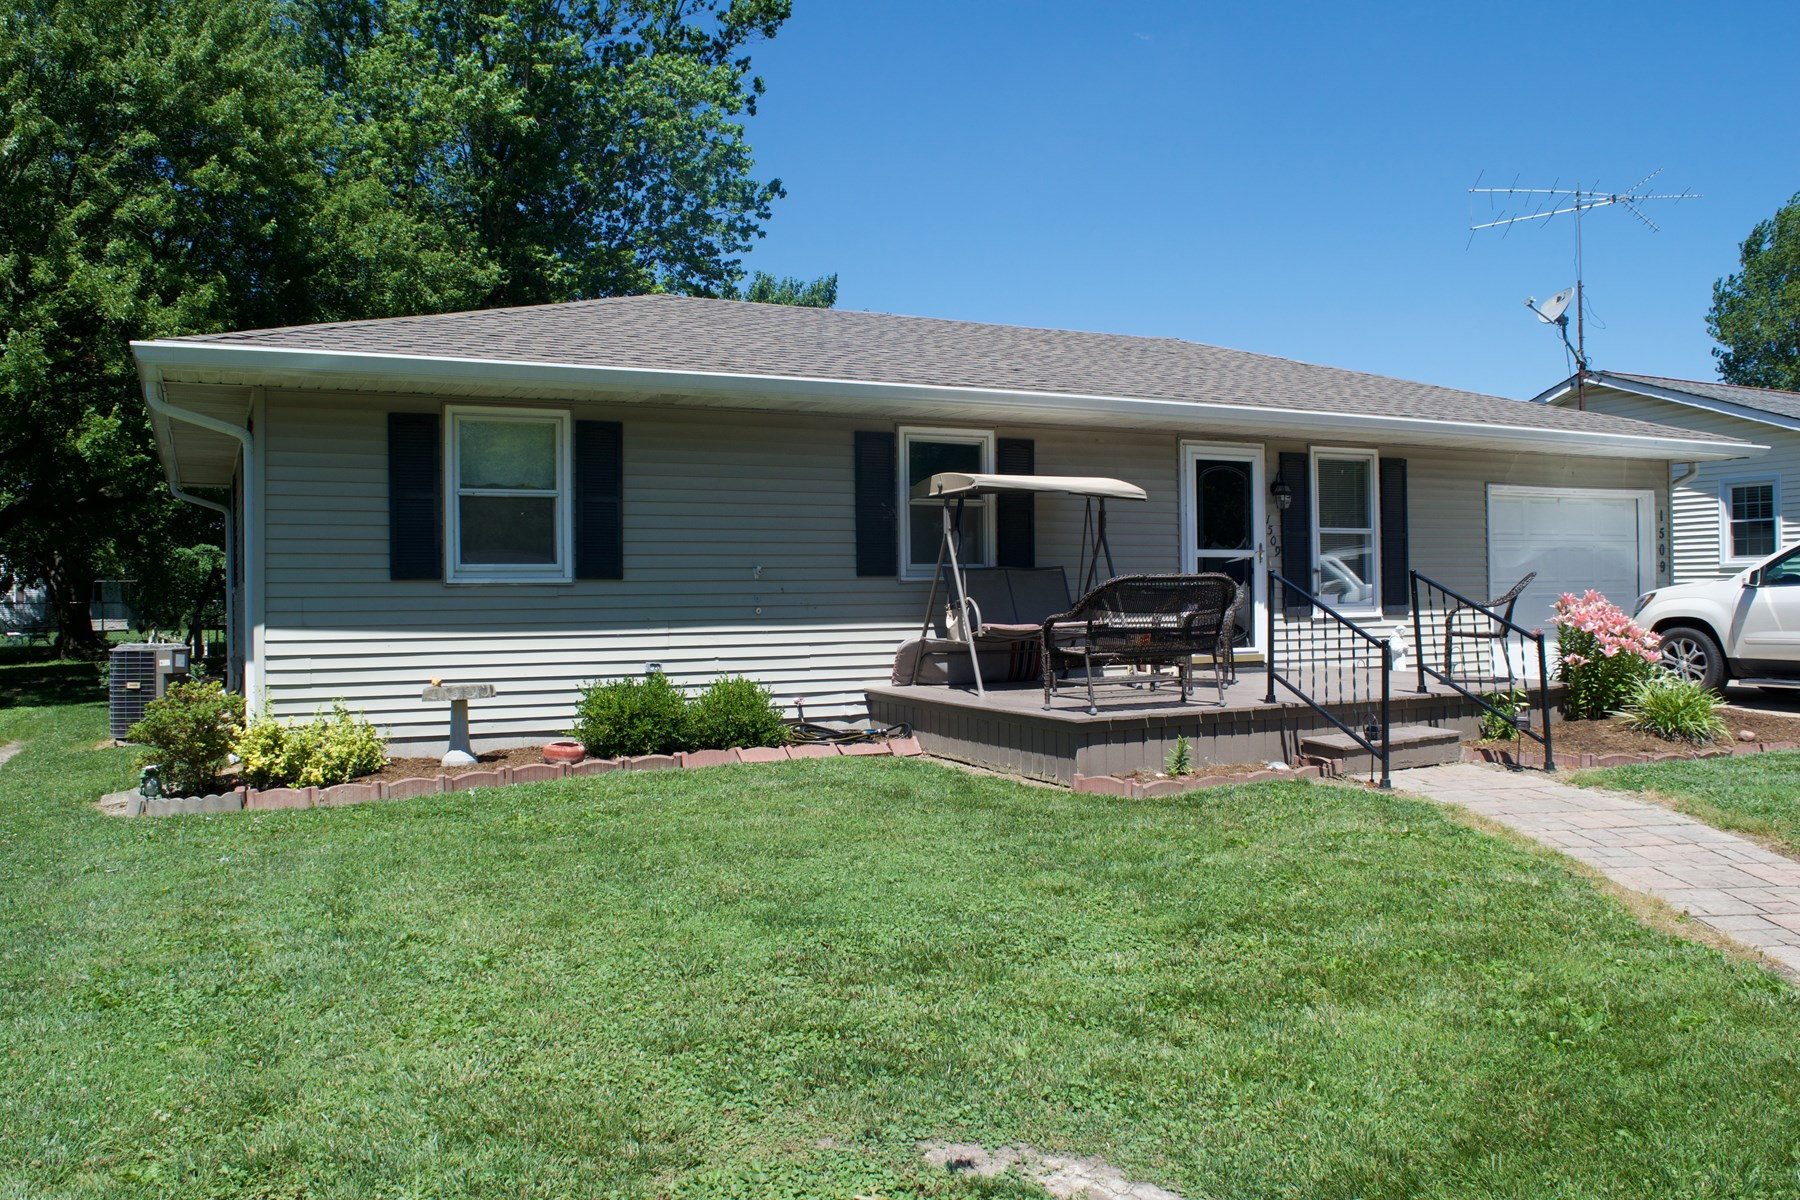 3 Bedroom, 2 Bath Home, Robinson, IL